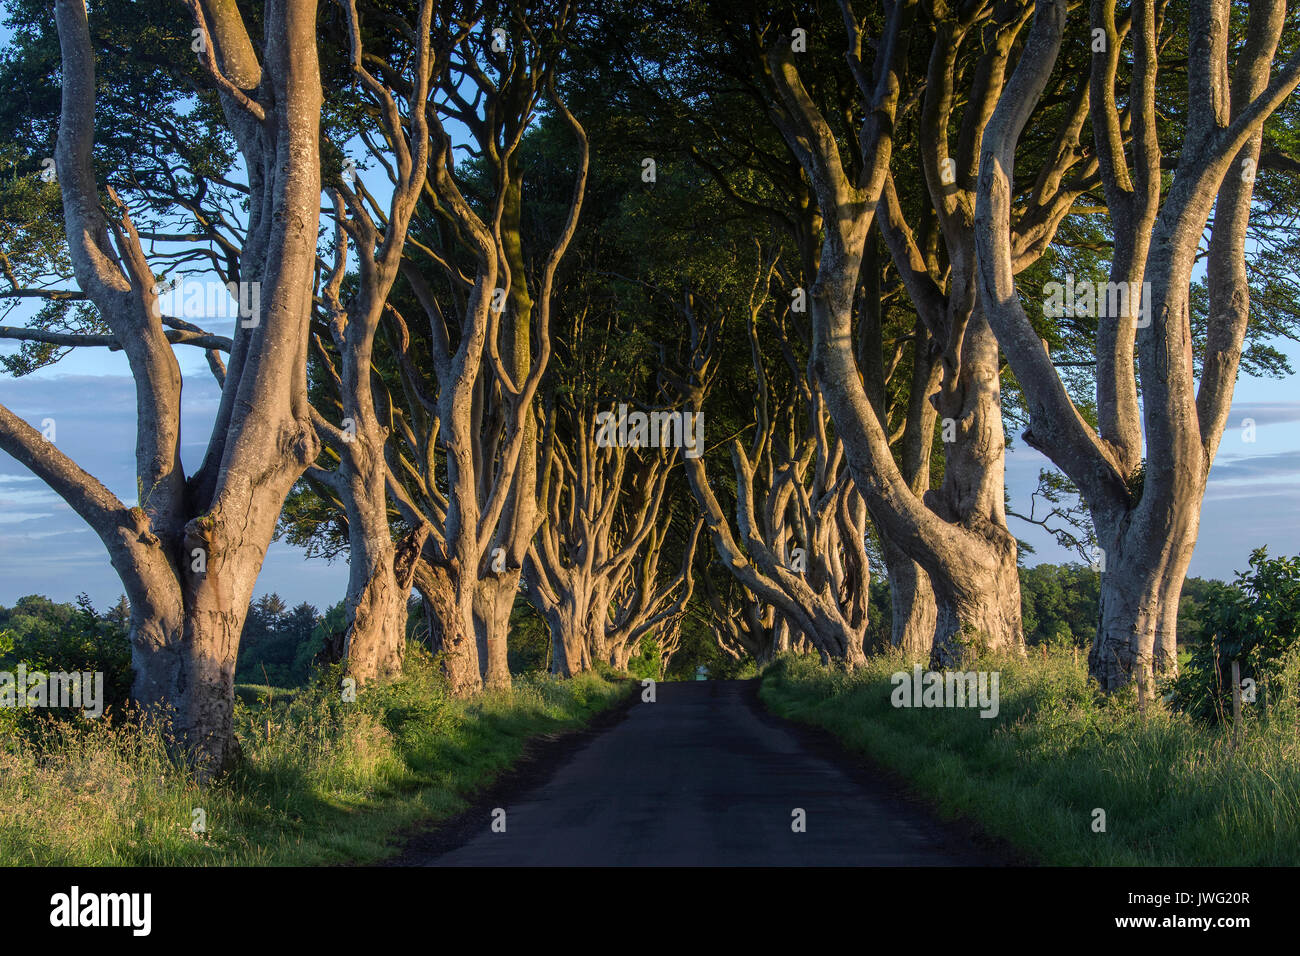 Early morning sunlight on the 'Dark Hedges' - an avenue of ancient trees in County Antrim in Northern Ireland. - Stock Image